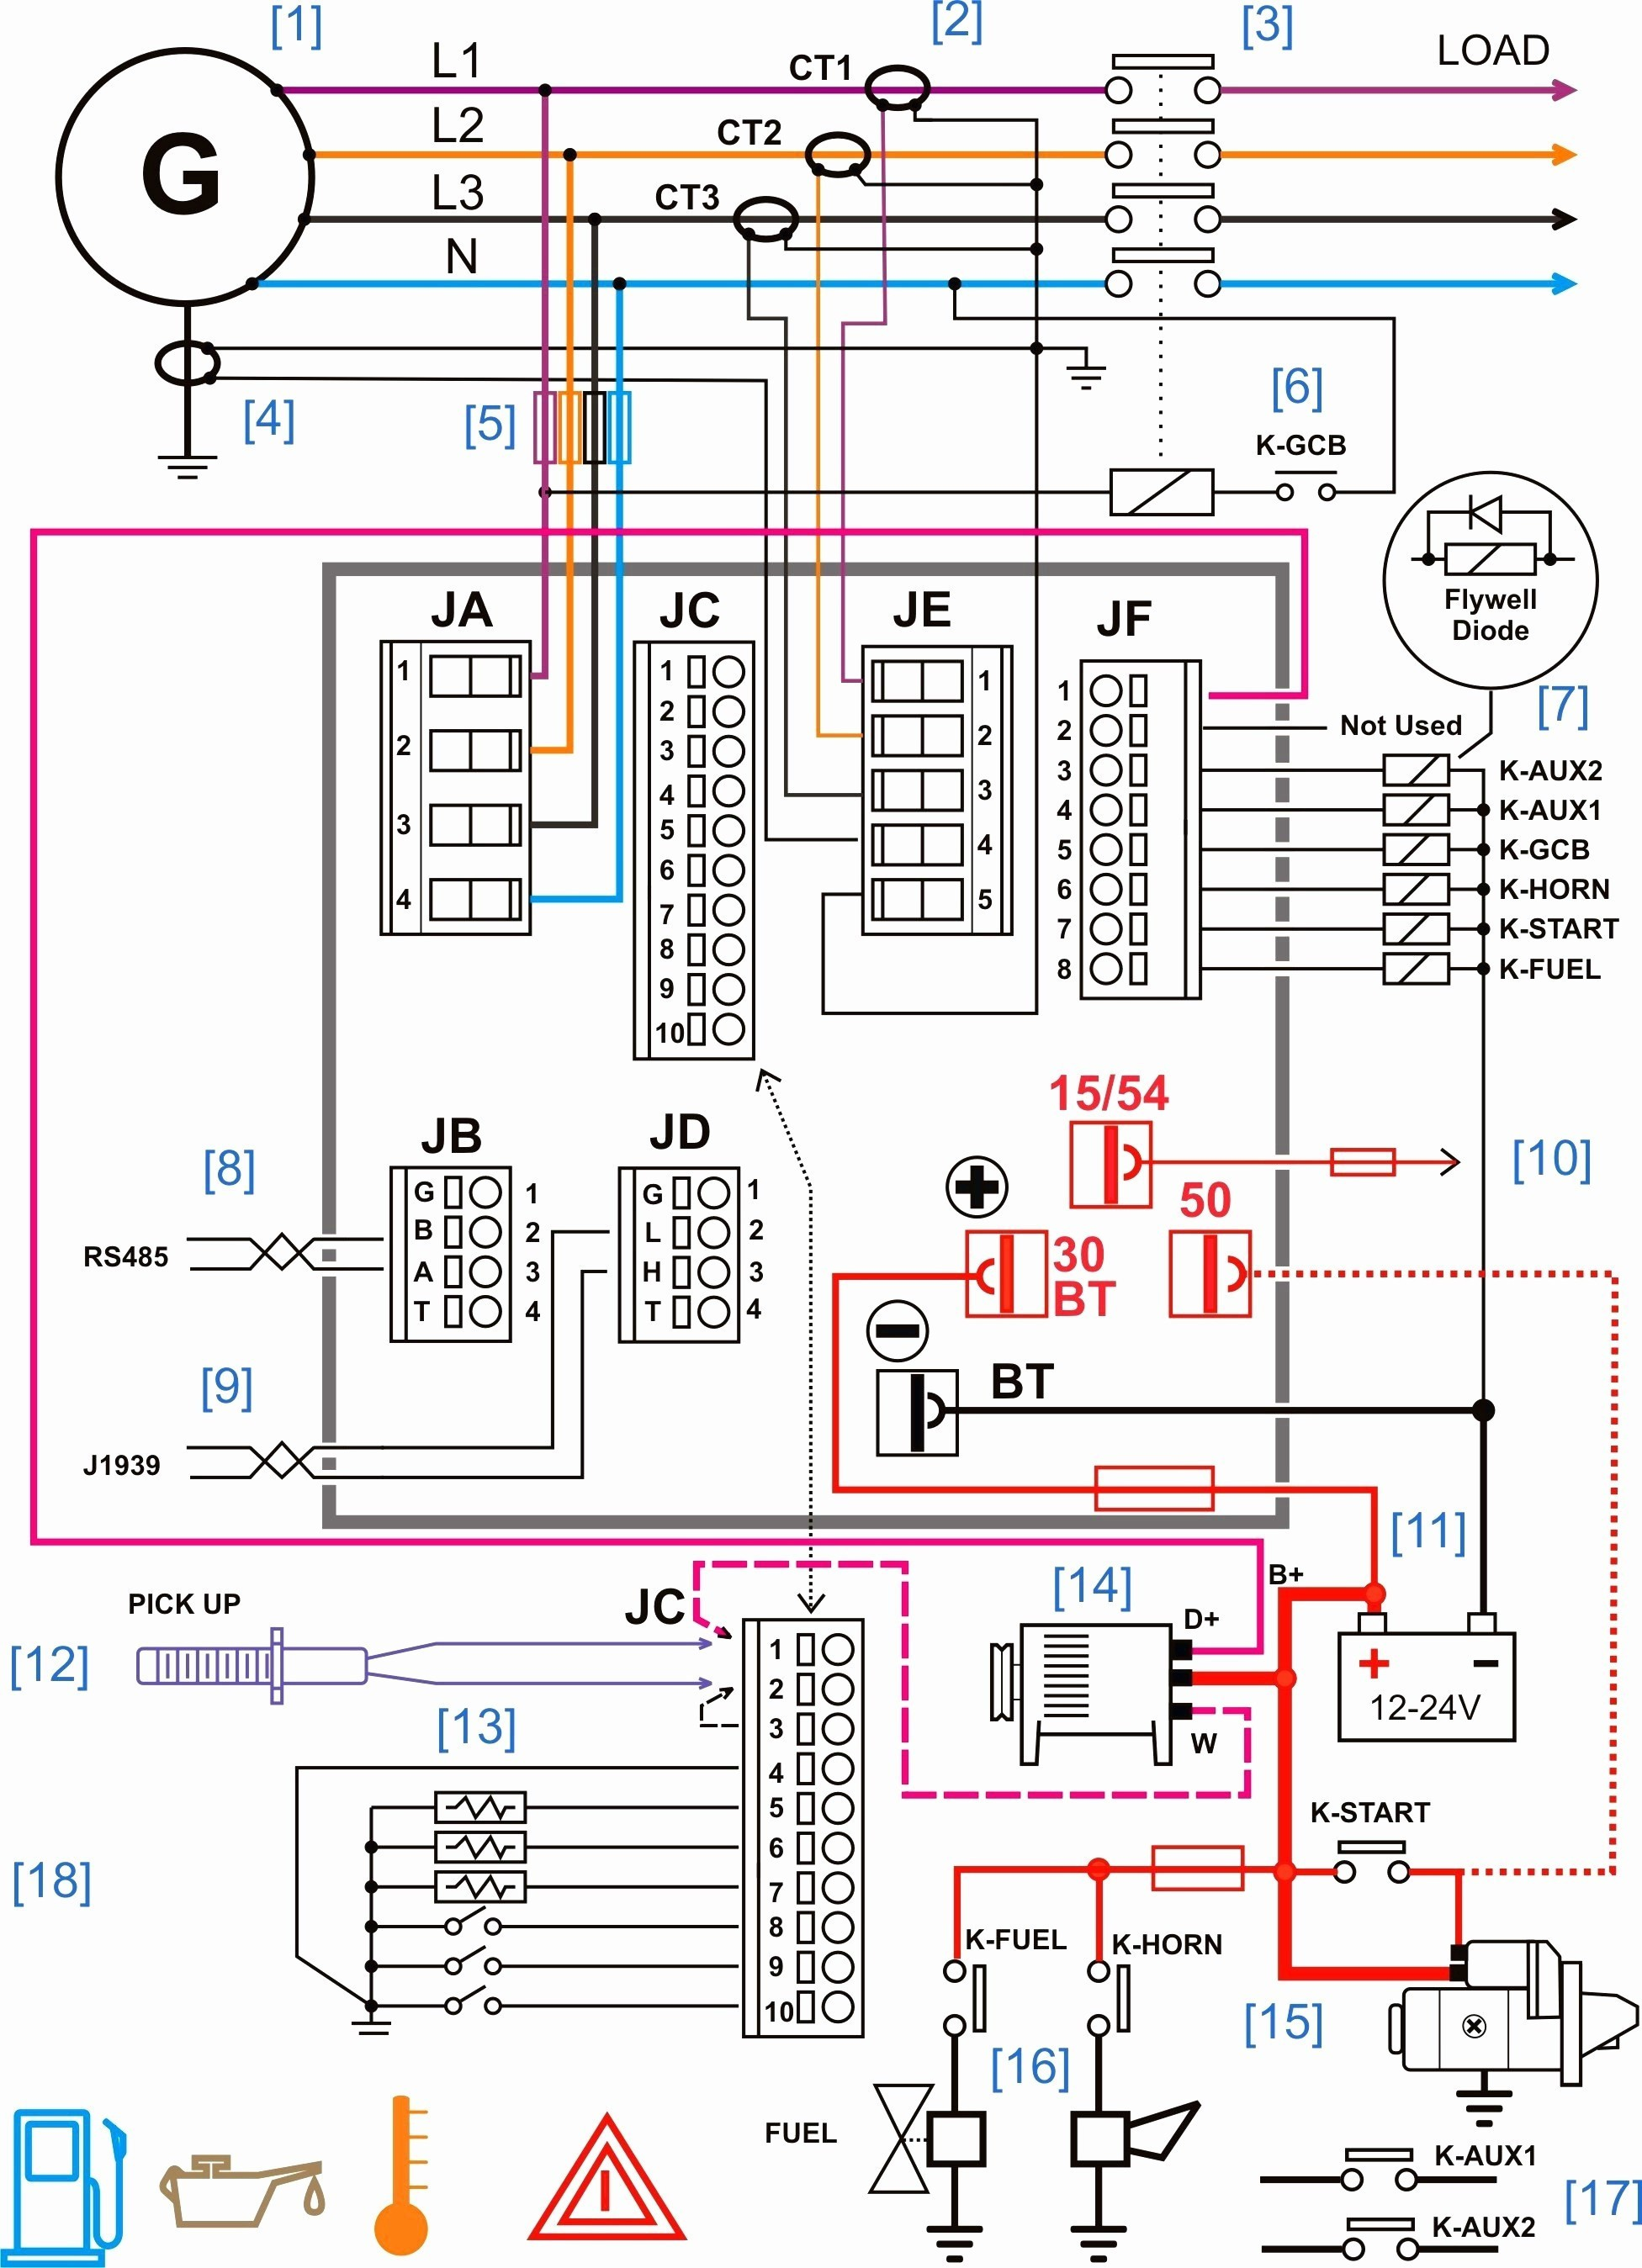 Color Wiring Diagram Car Stereo Collection Automotive Wiring Diagram Color Codes Download Of Color Wiring Diagram Car Stereo